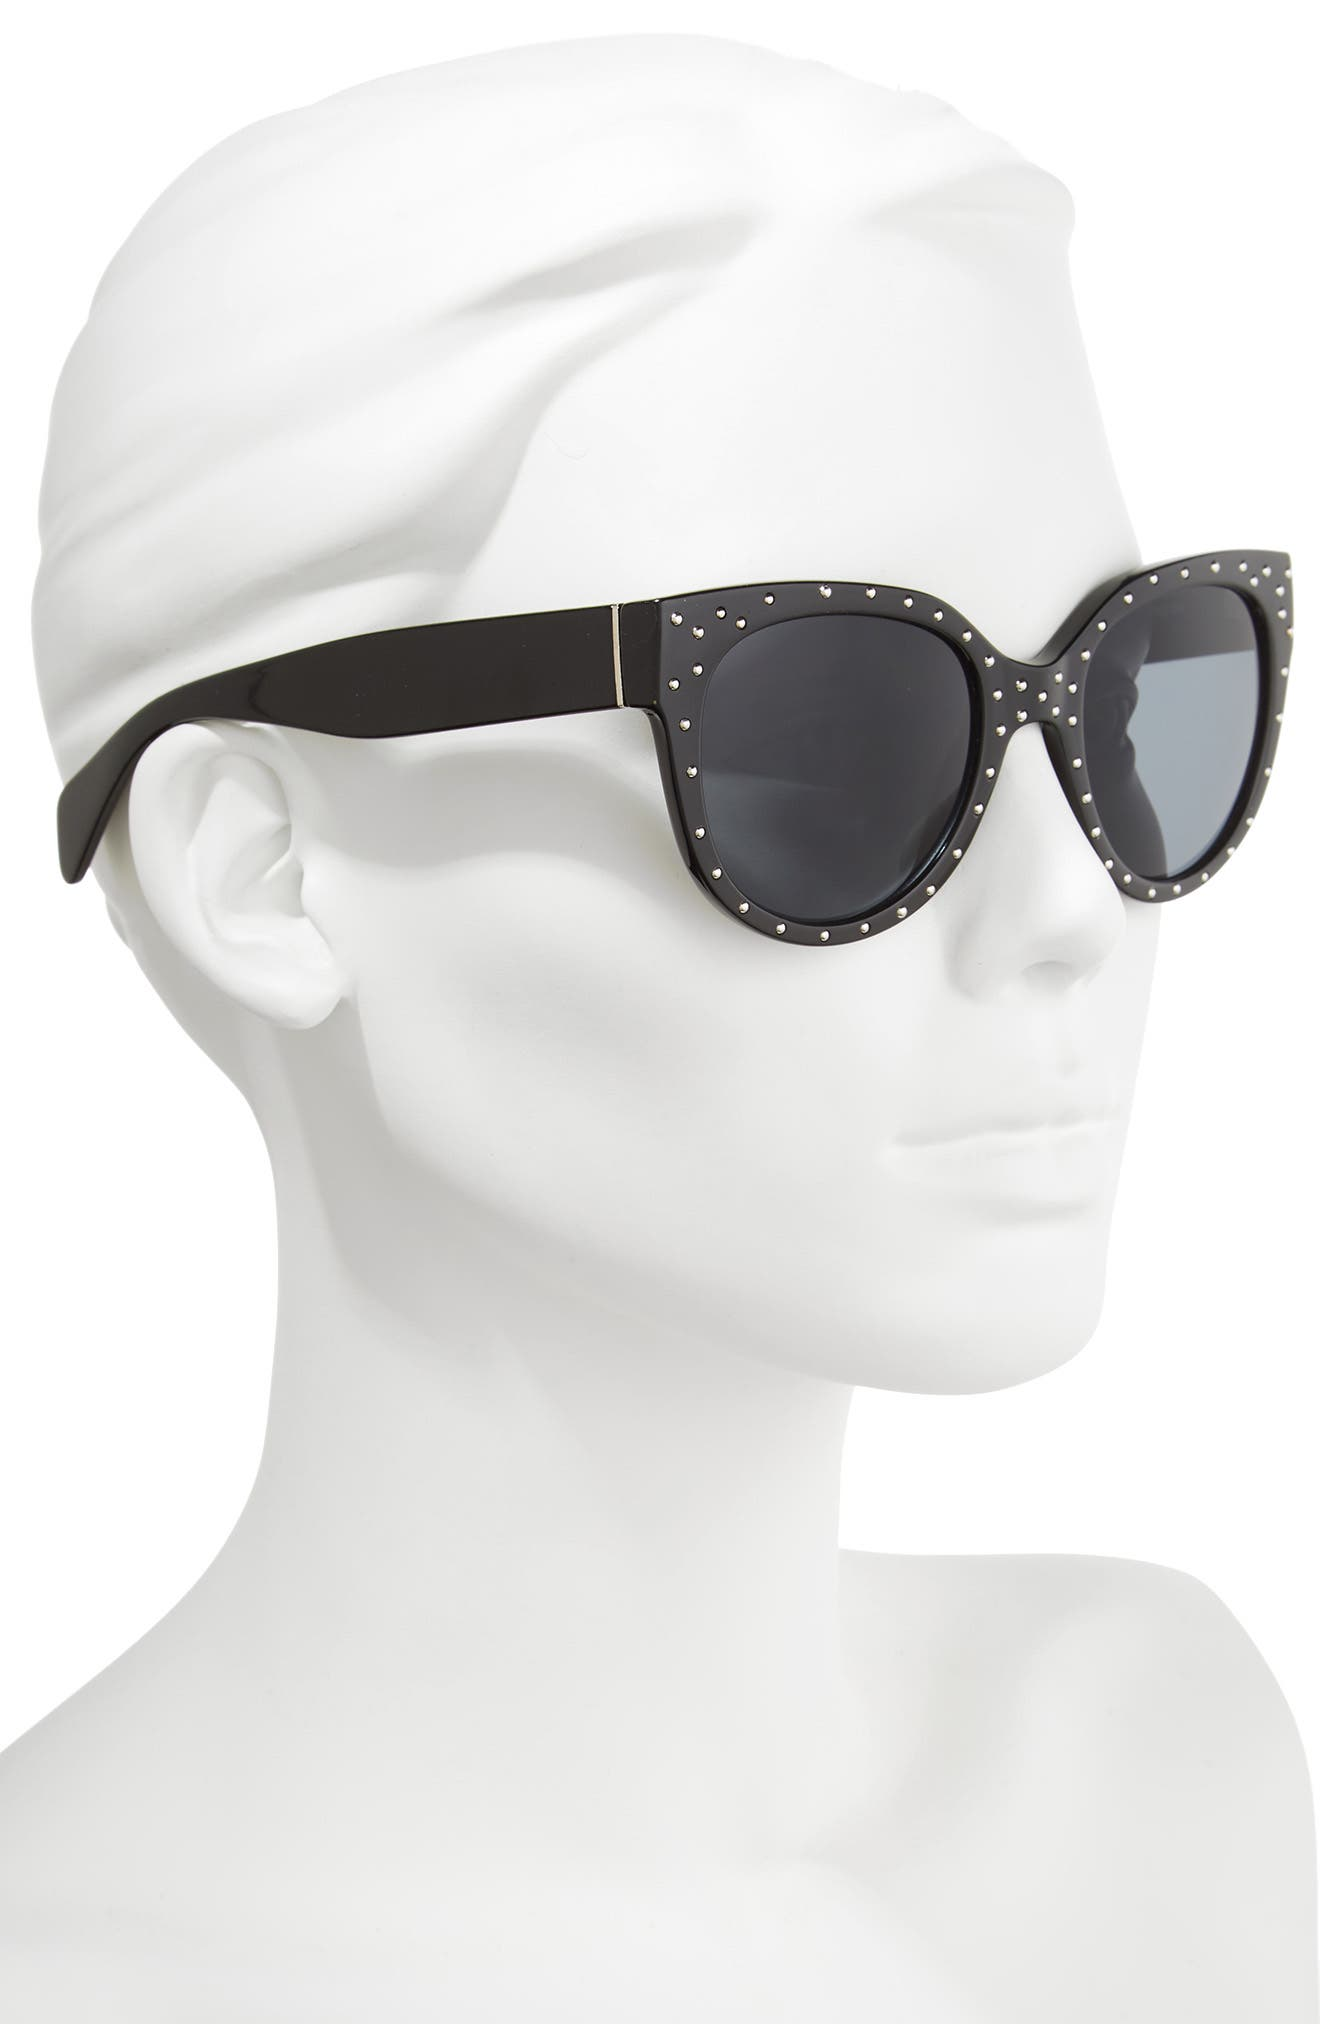 53mm Studded Cat Eye Sunglasses,                             Alternate thumbnail 2, color,                             001